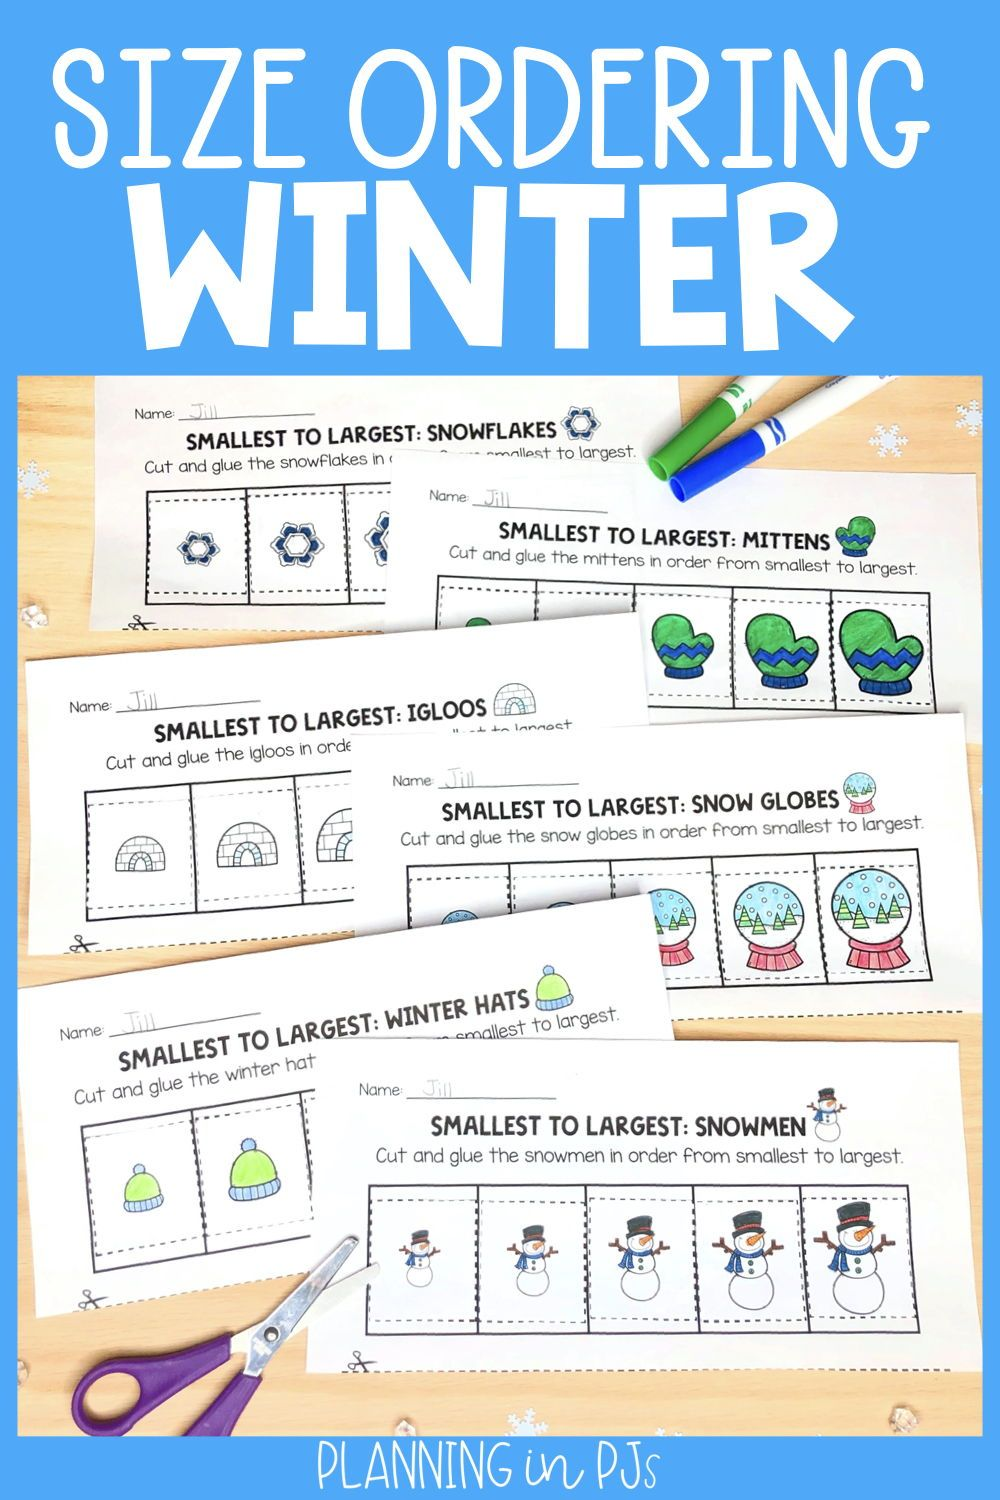 Winter Size Ordering Bundle From Smallest To Largest Elementary Math Winter Theme Kindergarten Games